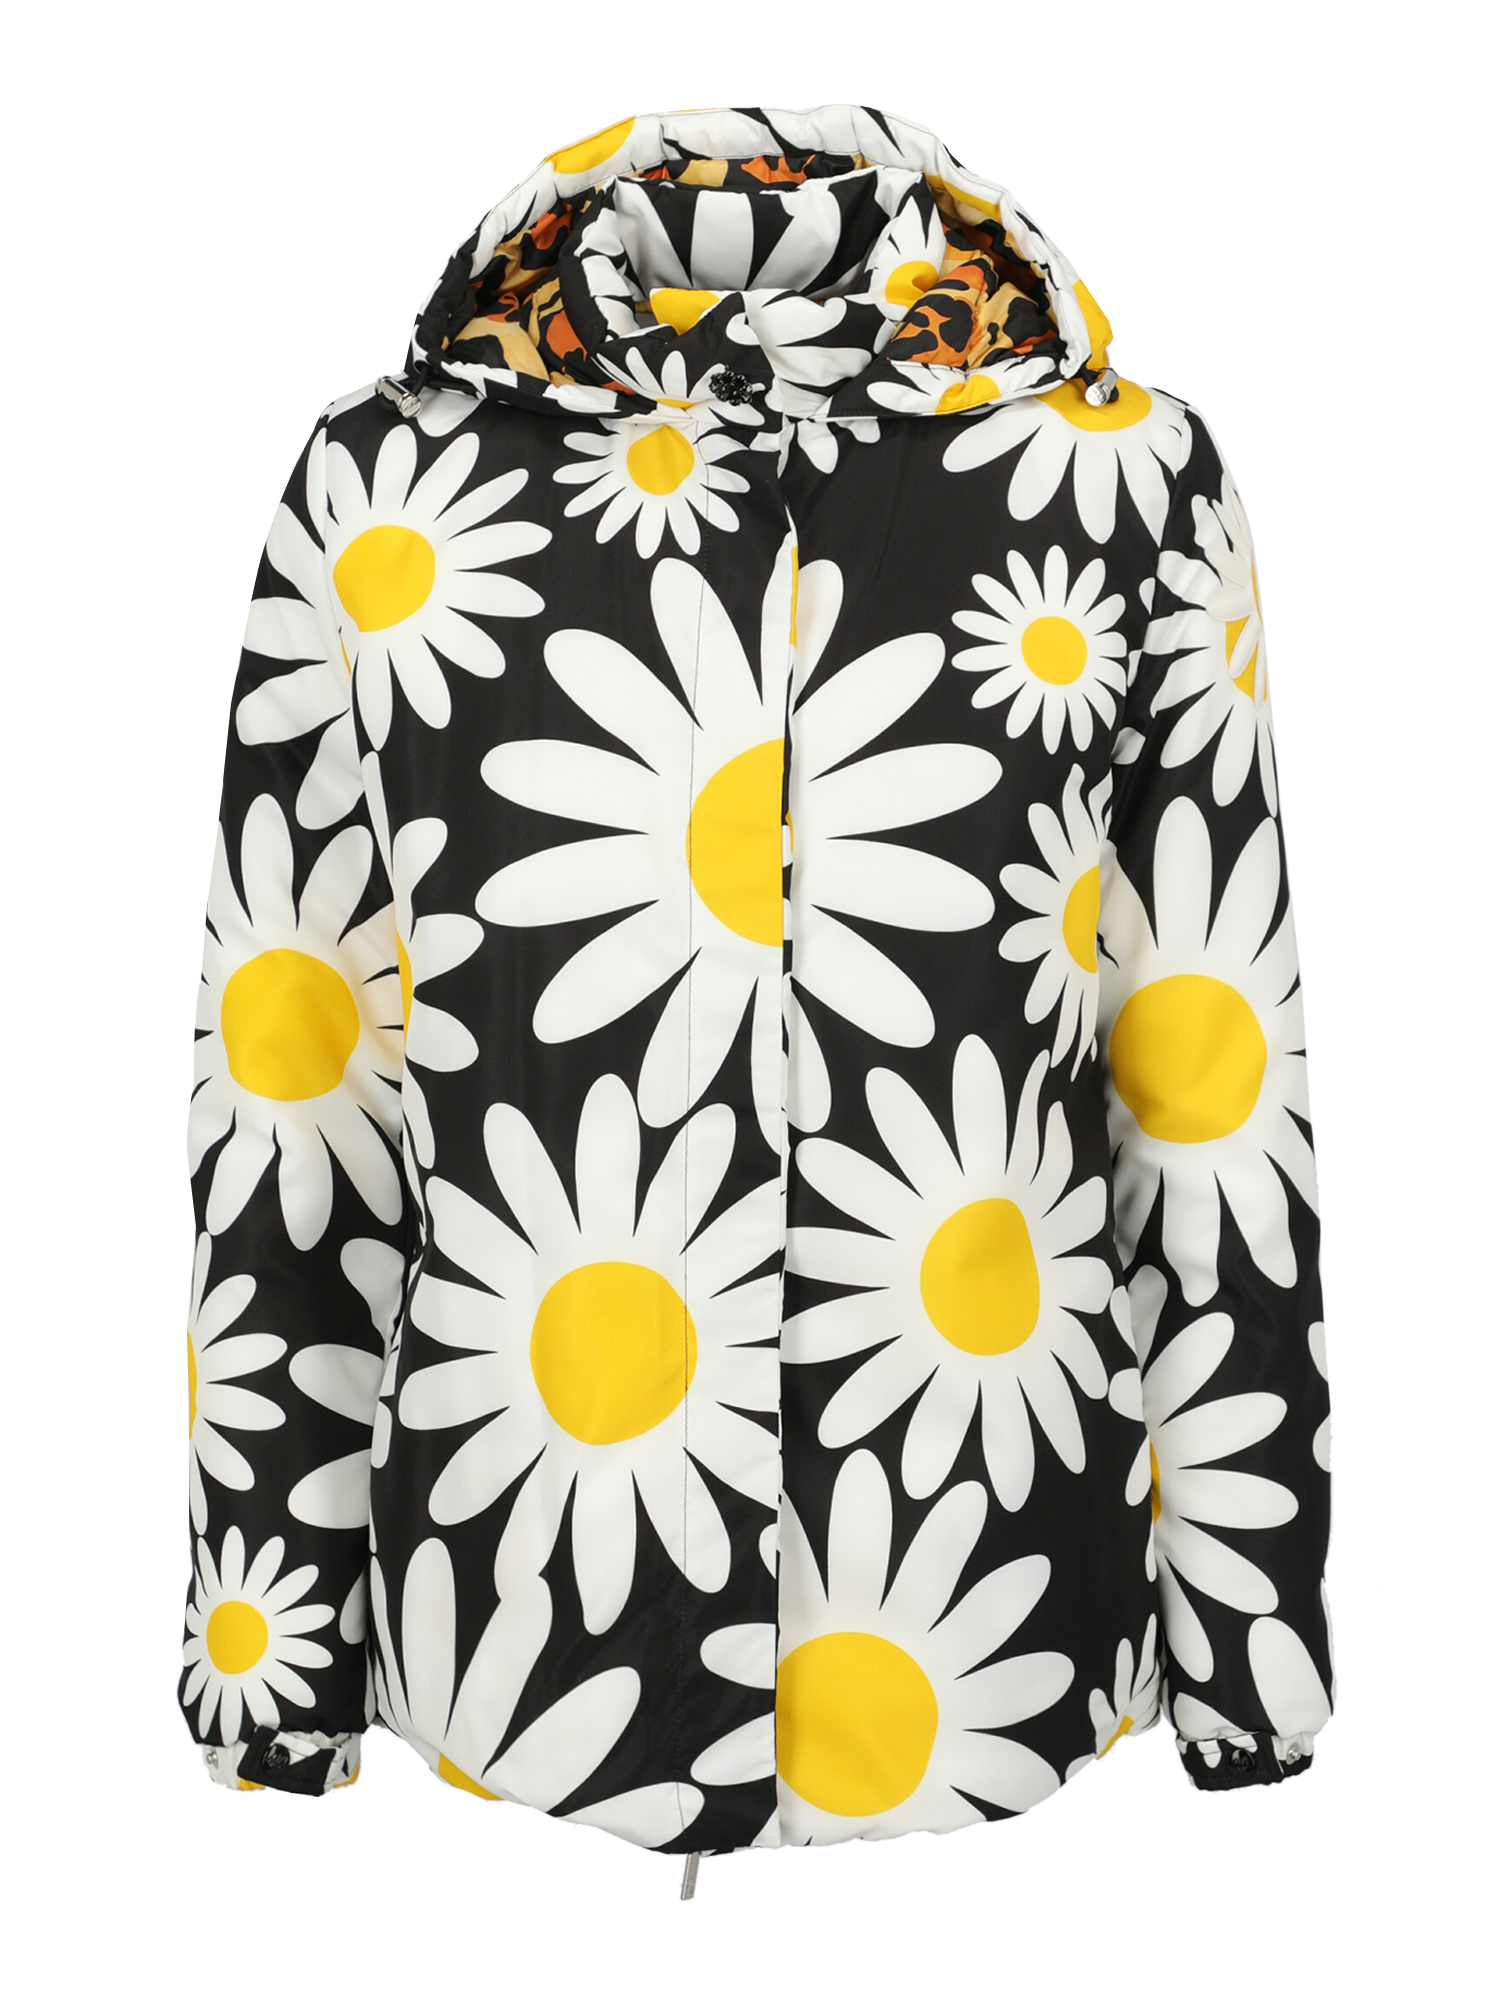 Pre-owned Moncler Clothing In Black, White, Yellow